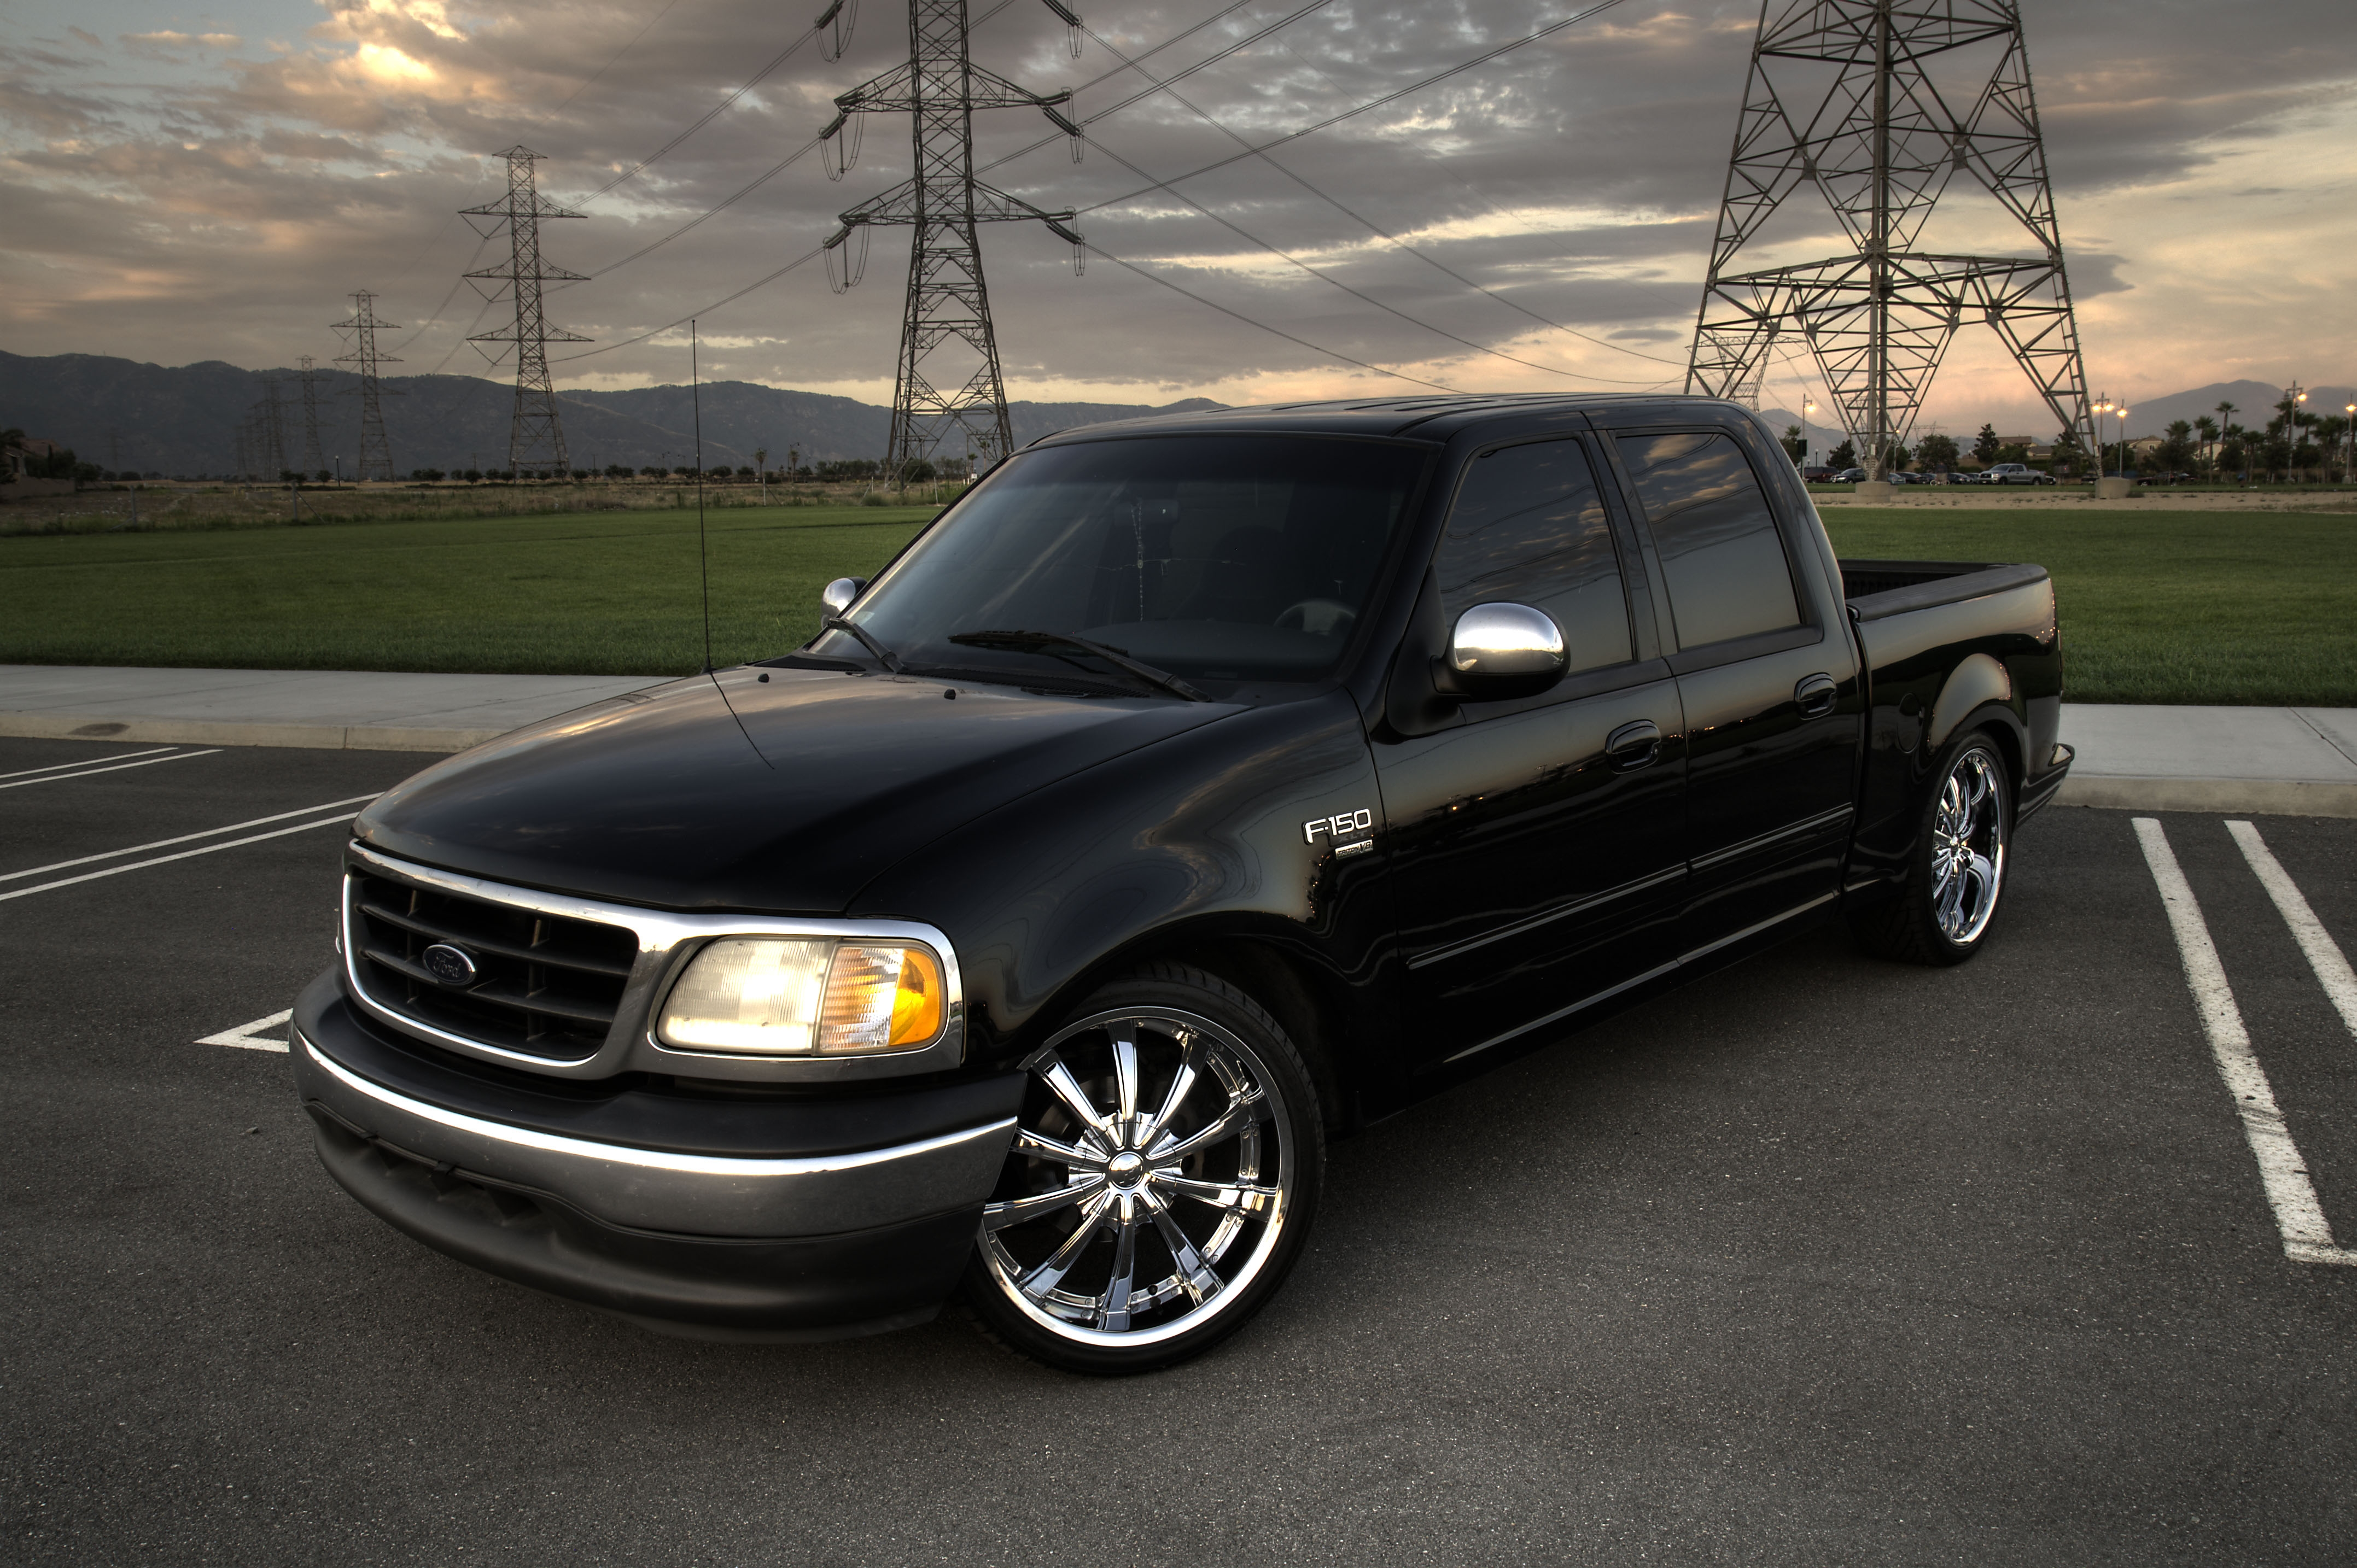 Ford Lightning Specs >> bocholoco 2001 Ford F150 SuperCrew CabShort Bed 4D Specs, Photos, Modification Info at CarDomain